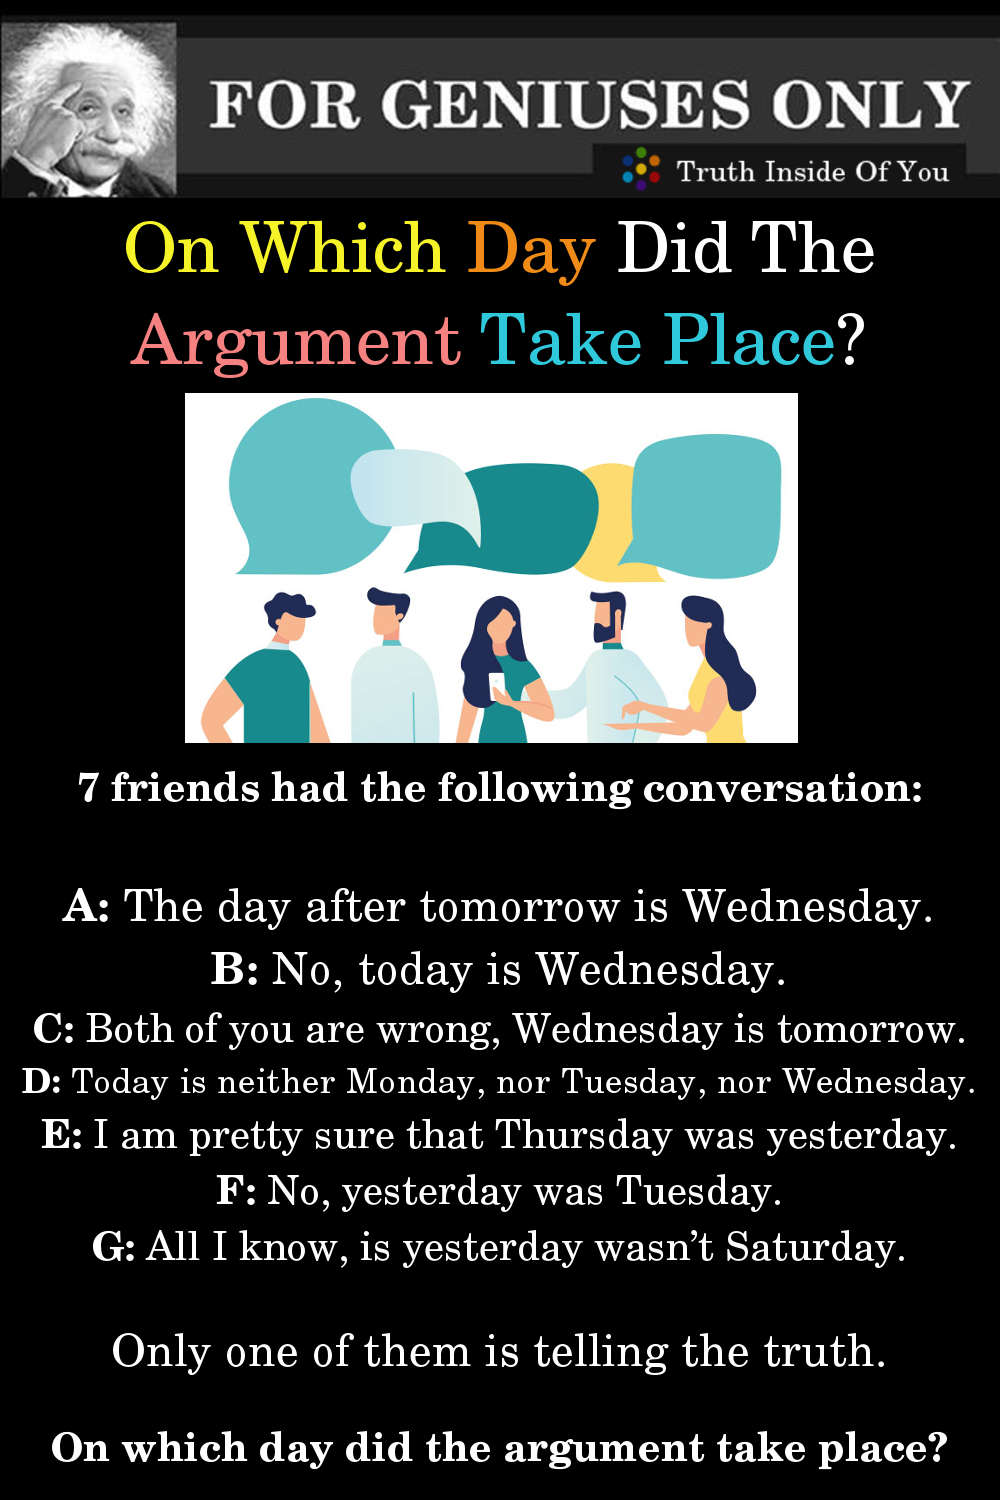 Riddle: On Which Day Did The Argument Take Place?